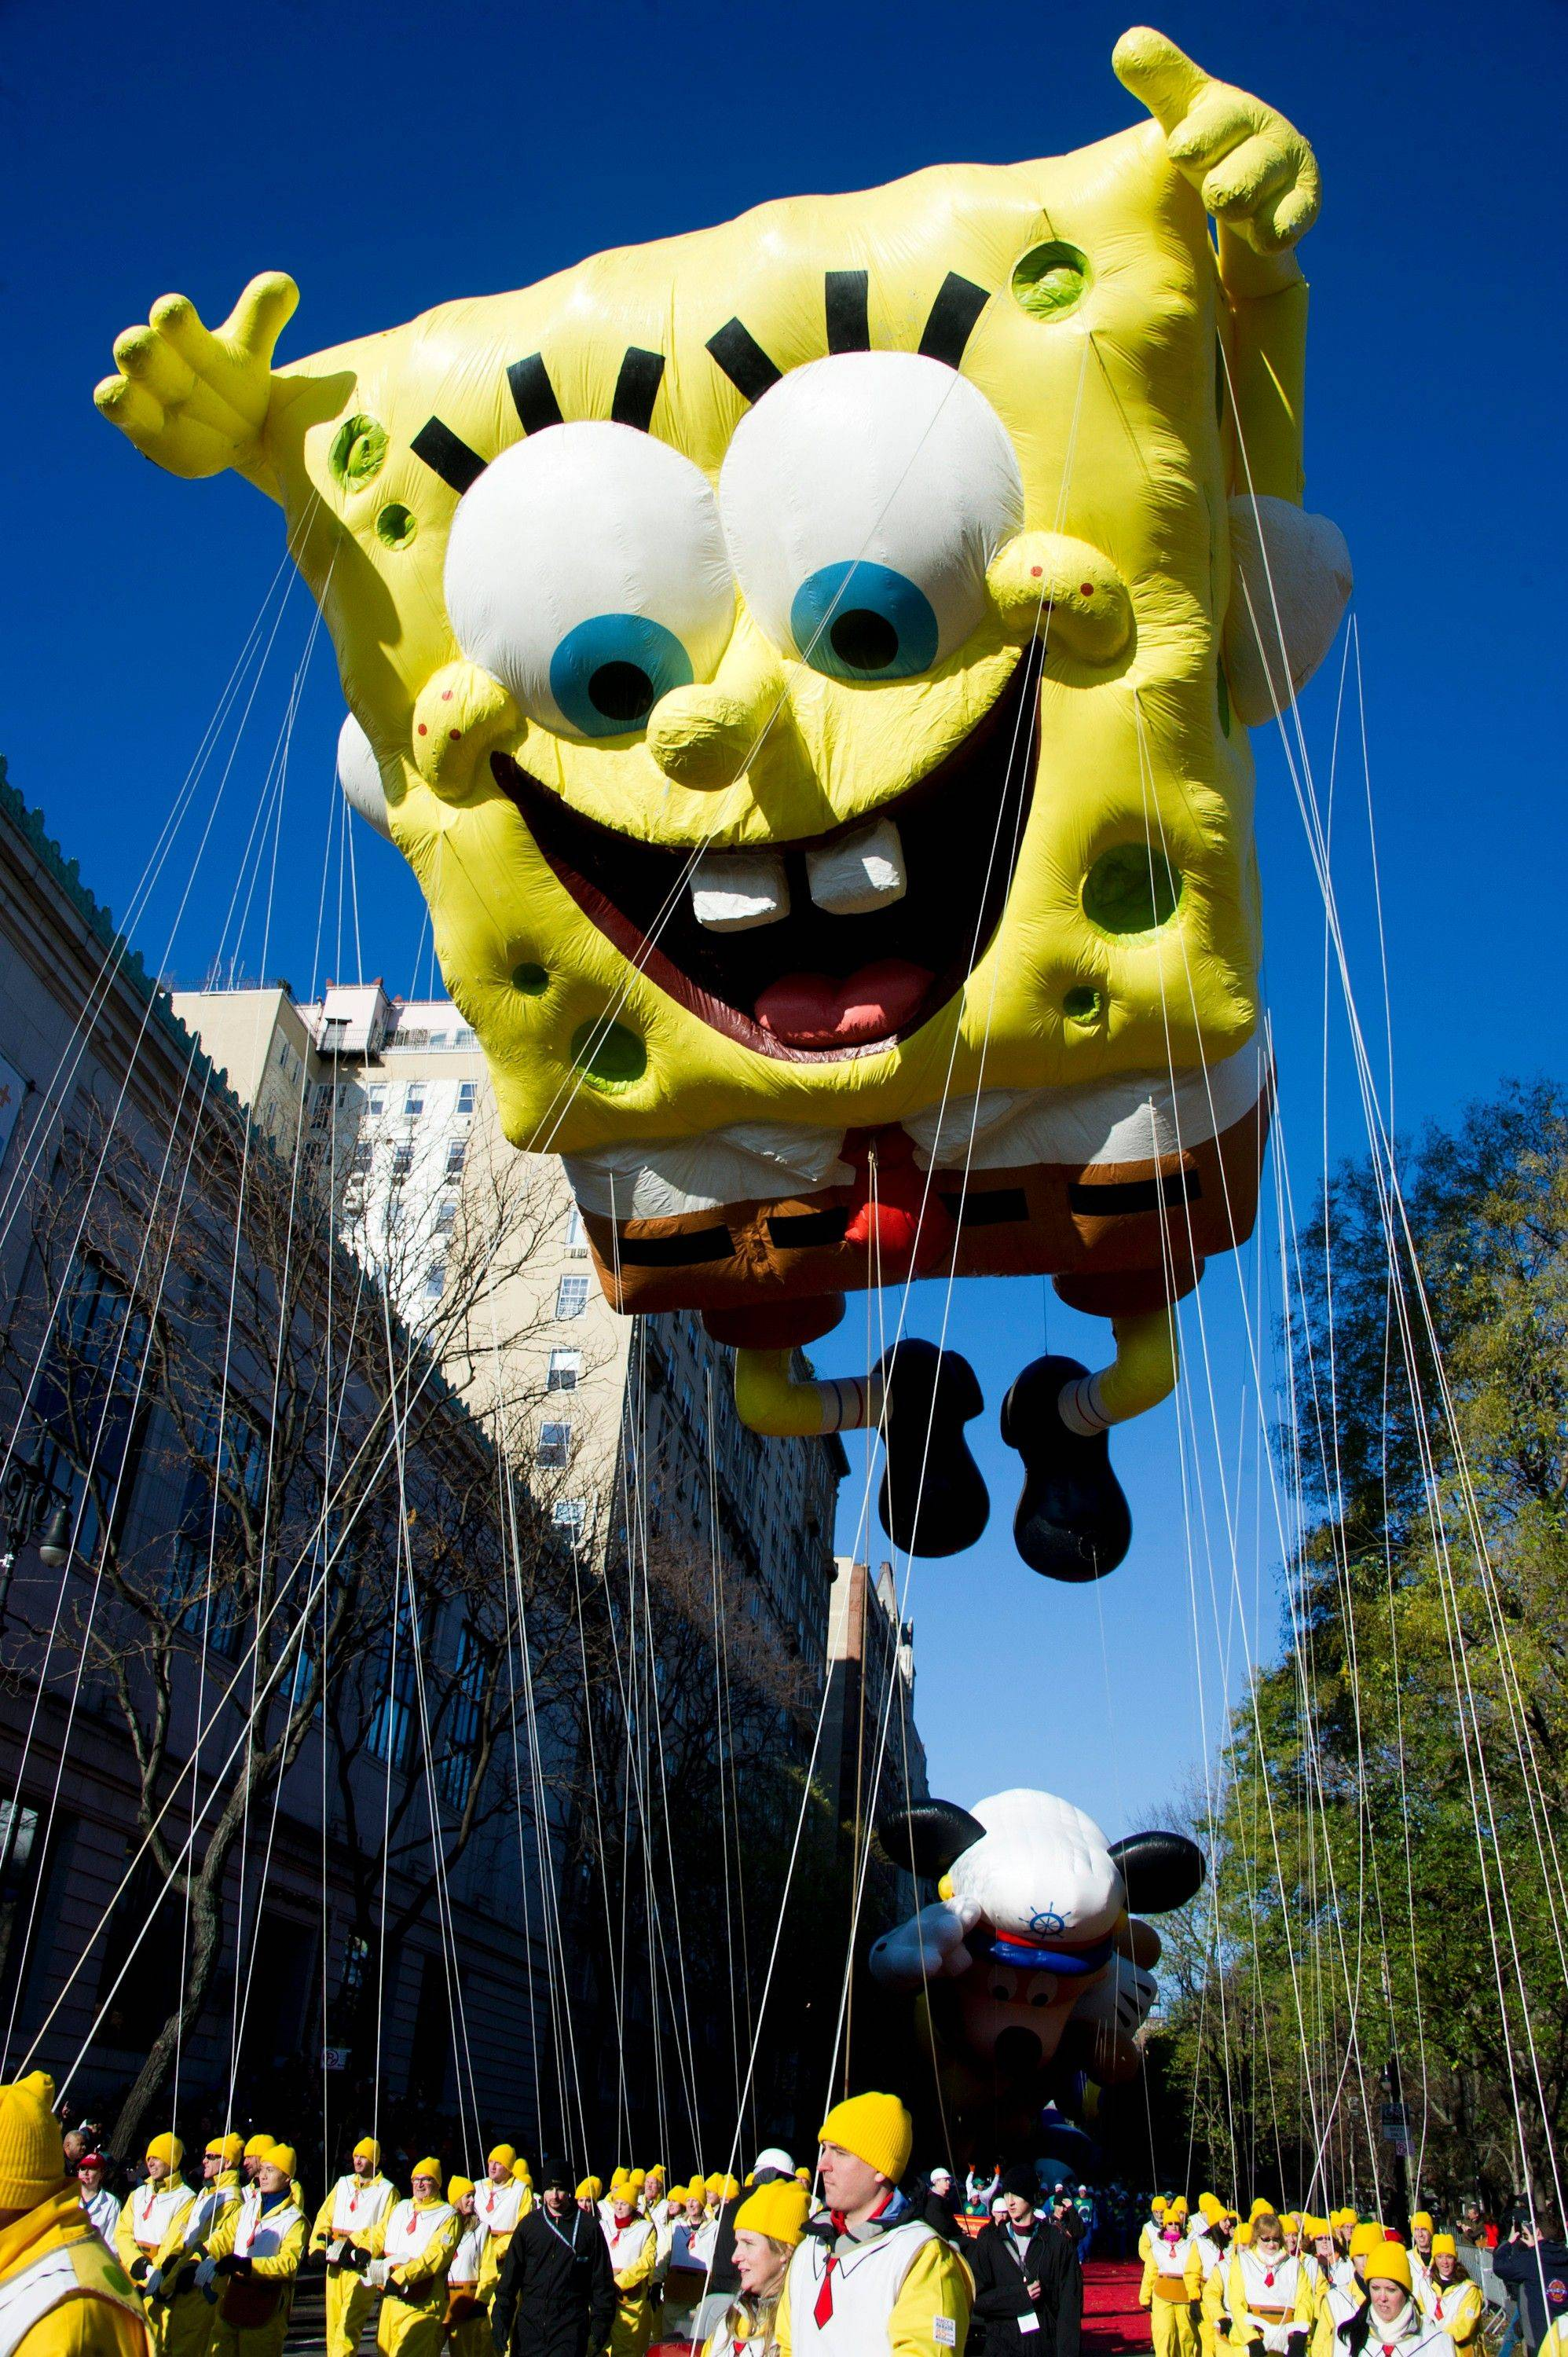 The SpongeBob SquarePants balloon floats in the Macy's Thanksgiving Day Parade in New York, Thursday, Nov. 24, 2011.